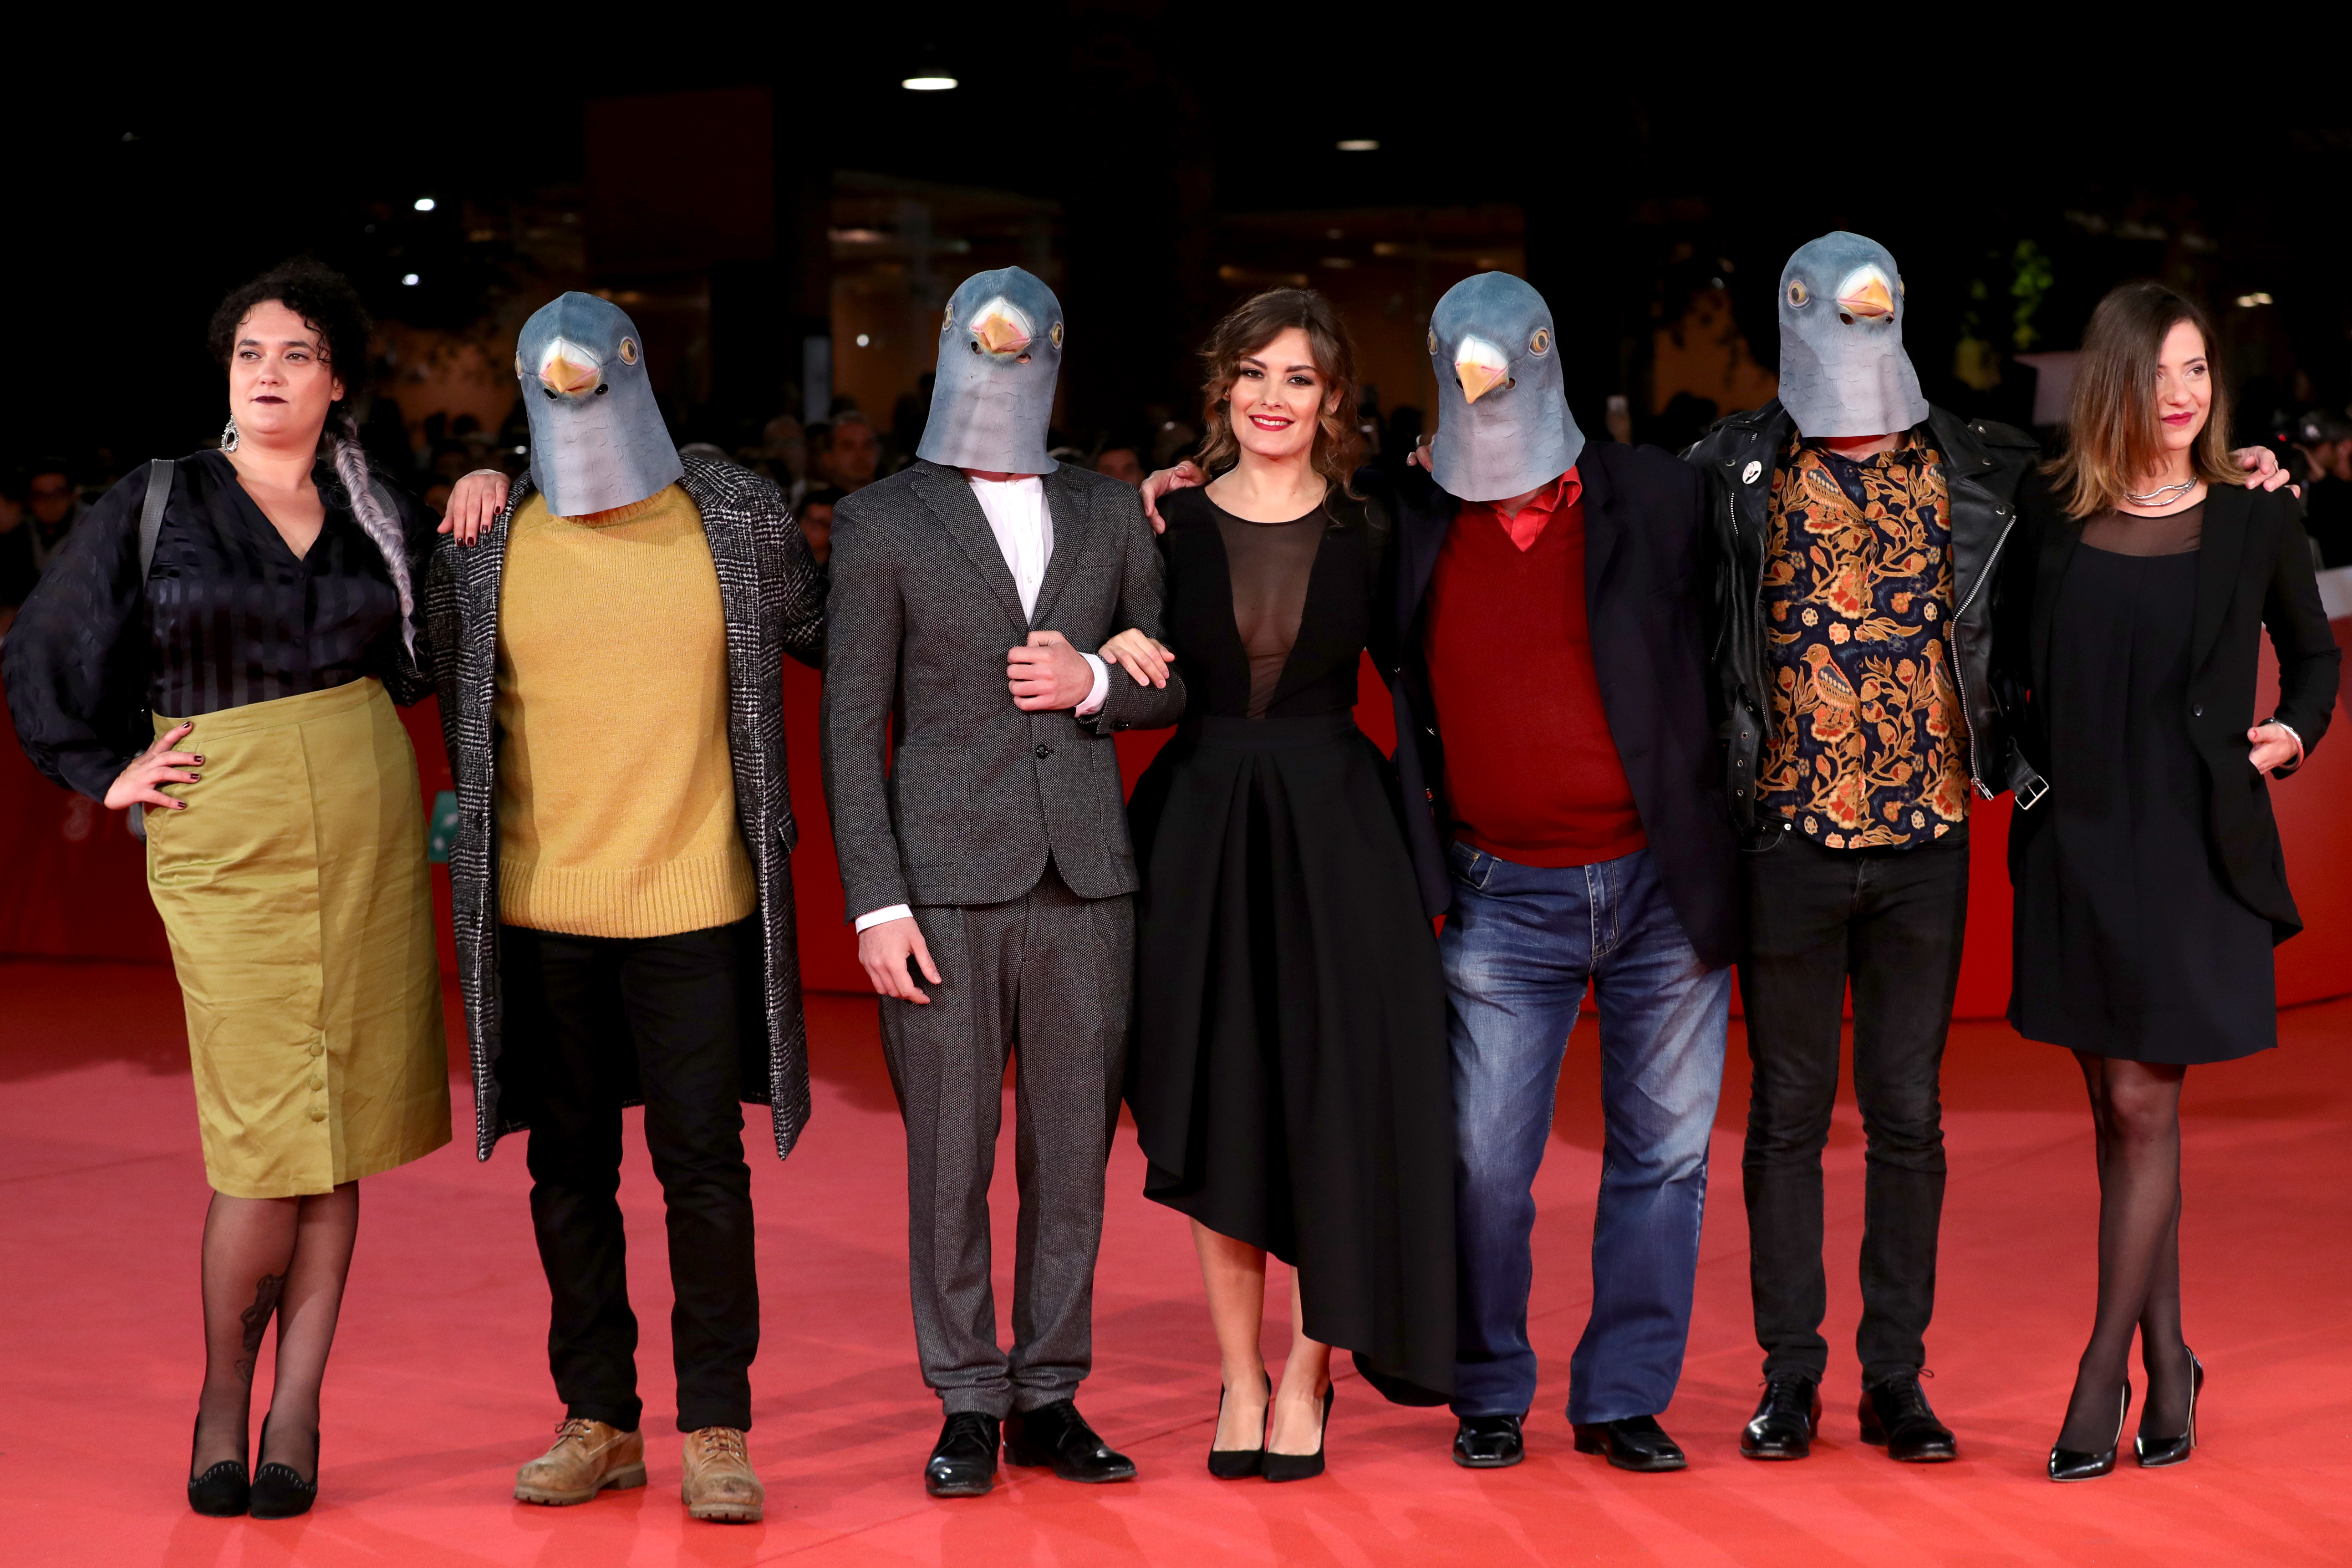 walks a red carpet for 'Maria By Callas, In Her Own Words' during the 12th Rome Film Fest at Auditorium Parco Della Musica on November 1, 2017 in Rome, Italy.